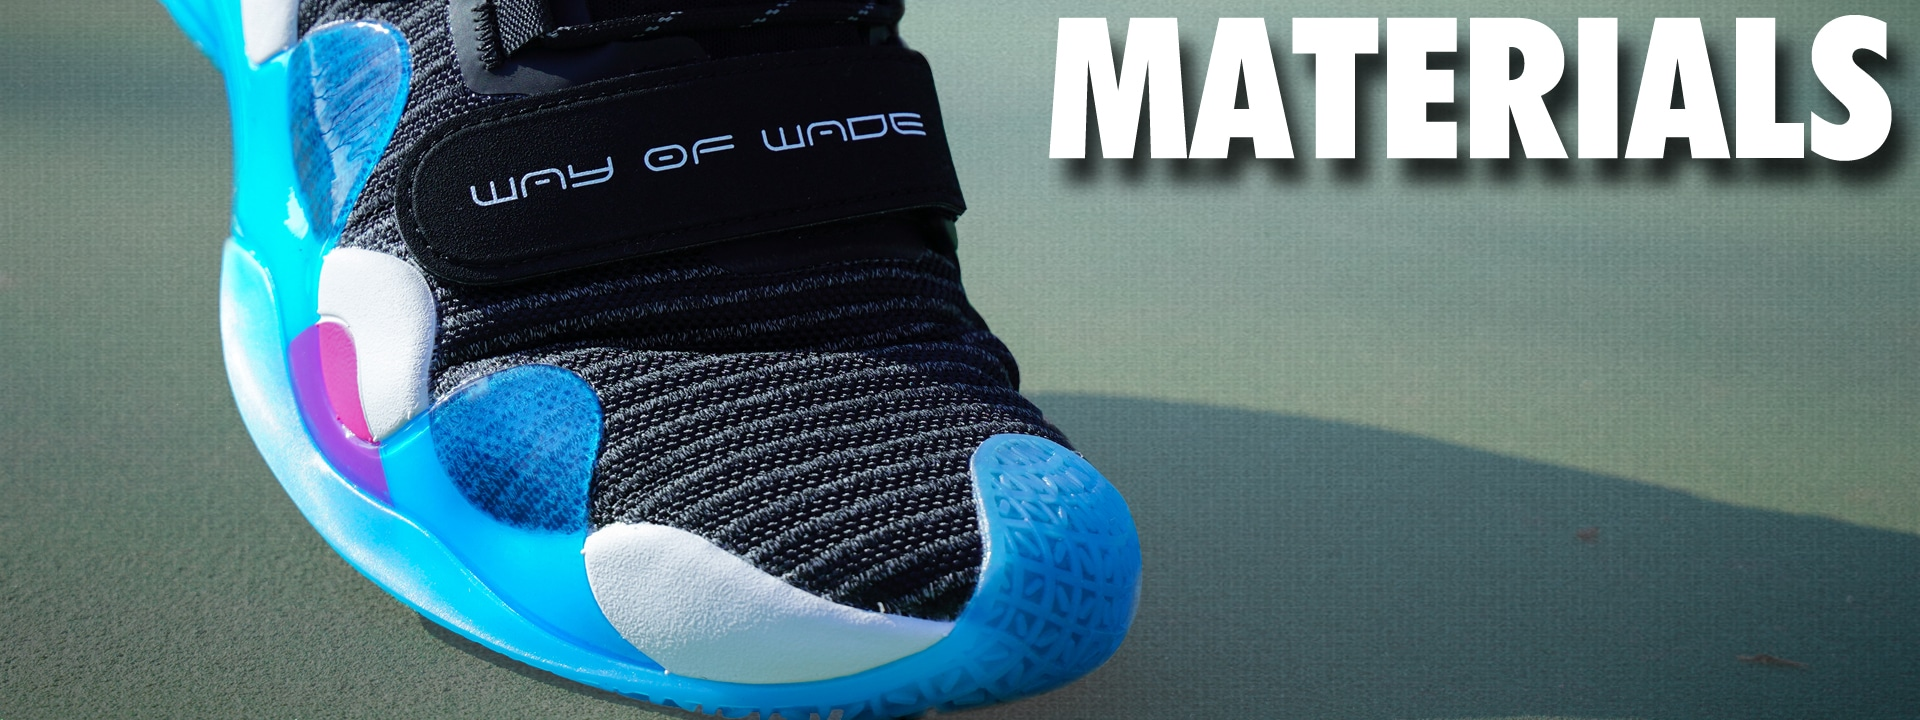 Li-Ning Way of Wade 8 Materials